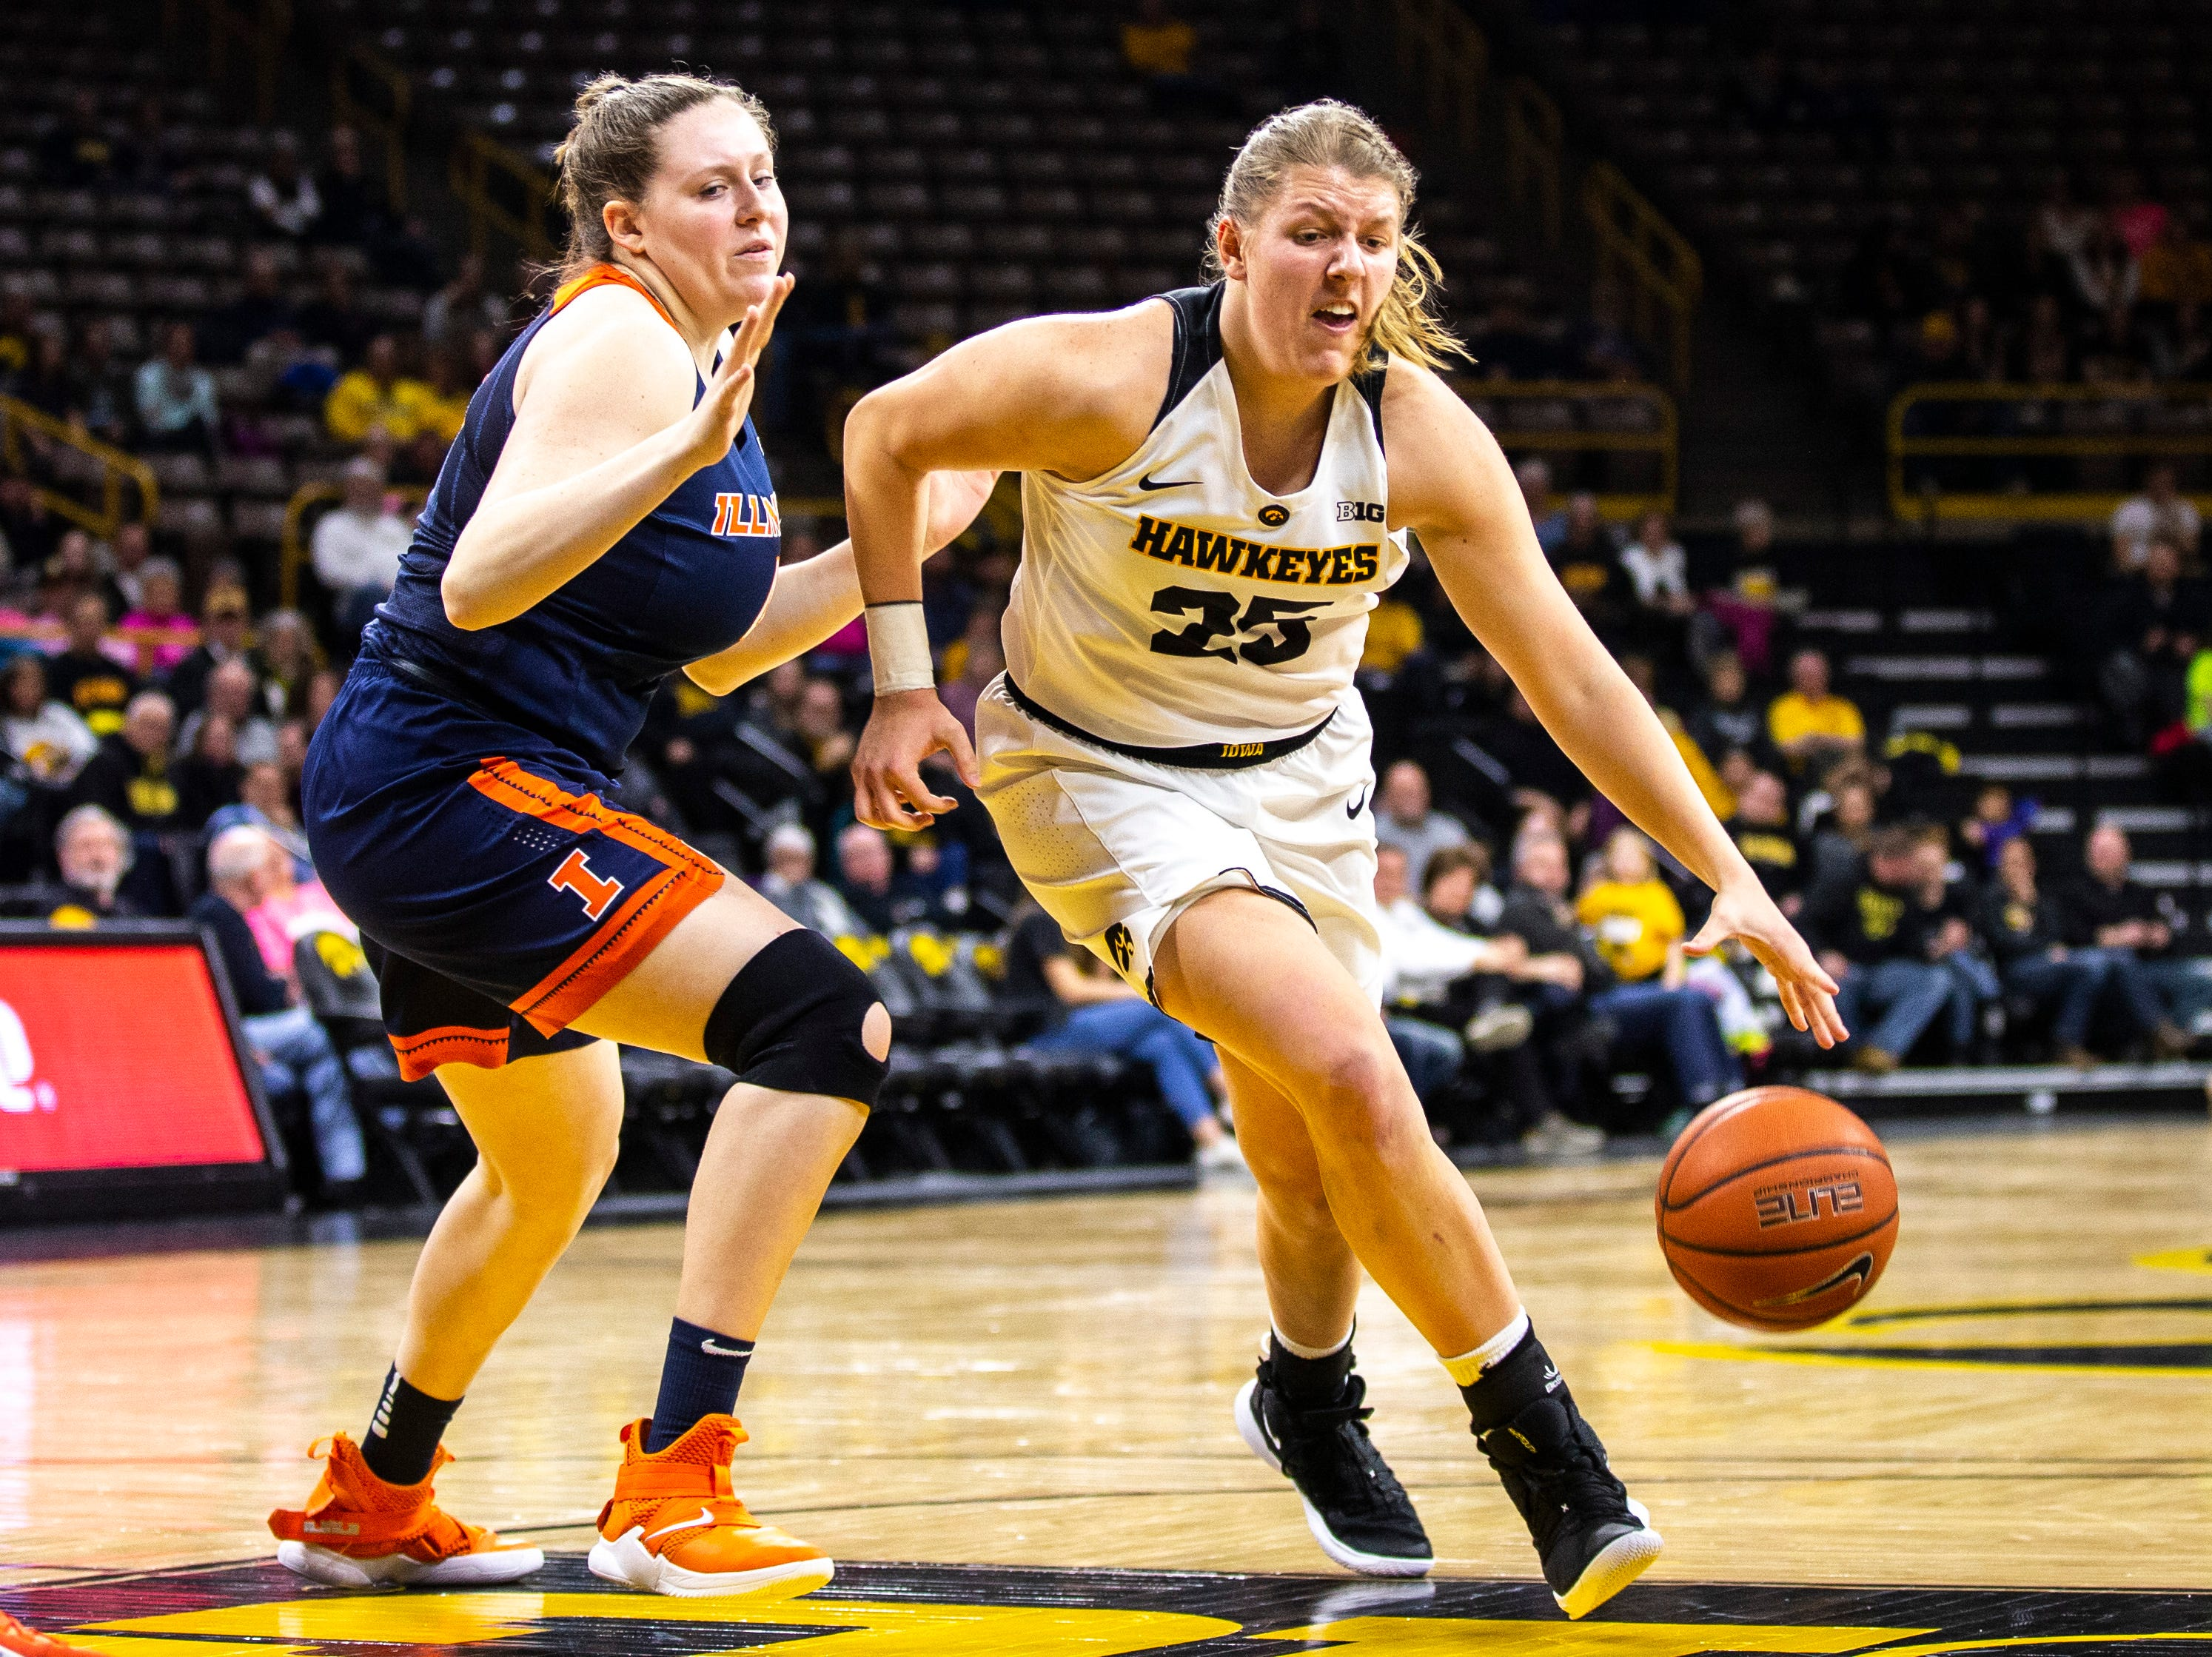 Iowa's Monika Czinano (25) drives to the basket while Illinois forward Alex Wittinger, left, defends during a NCAA Big Ten Conference women's basketball game on Thursday, Feb. 14, 2019 at Carver-Hawkeye Arena in Iowa City, Iowa.